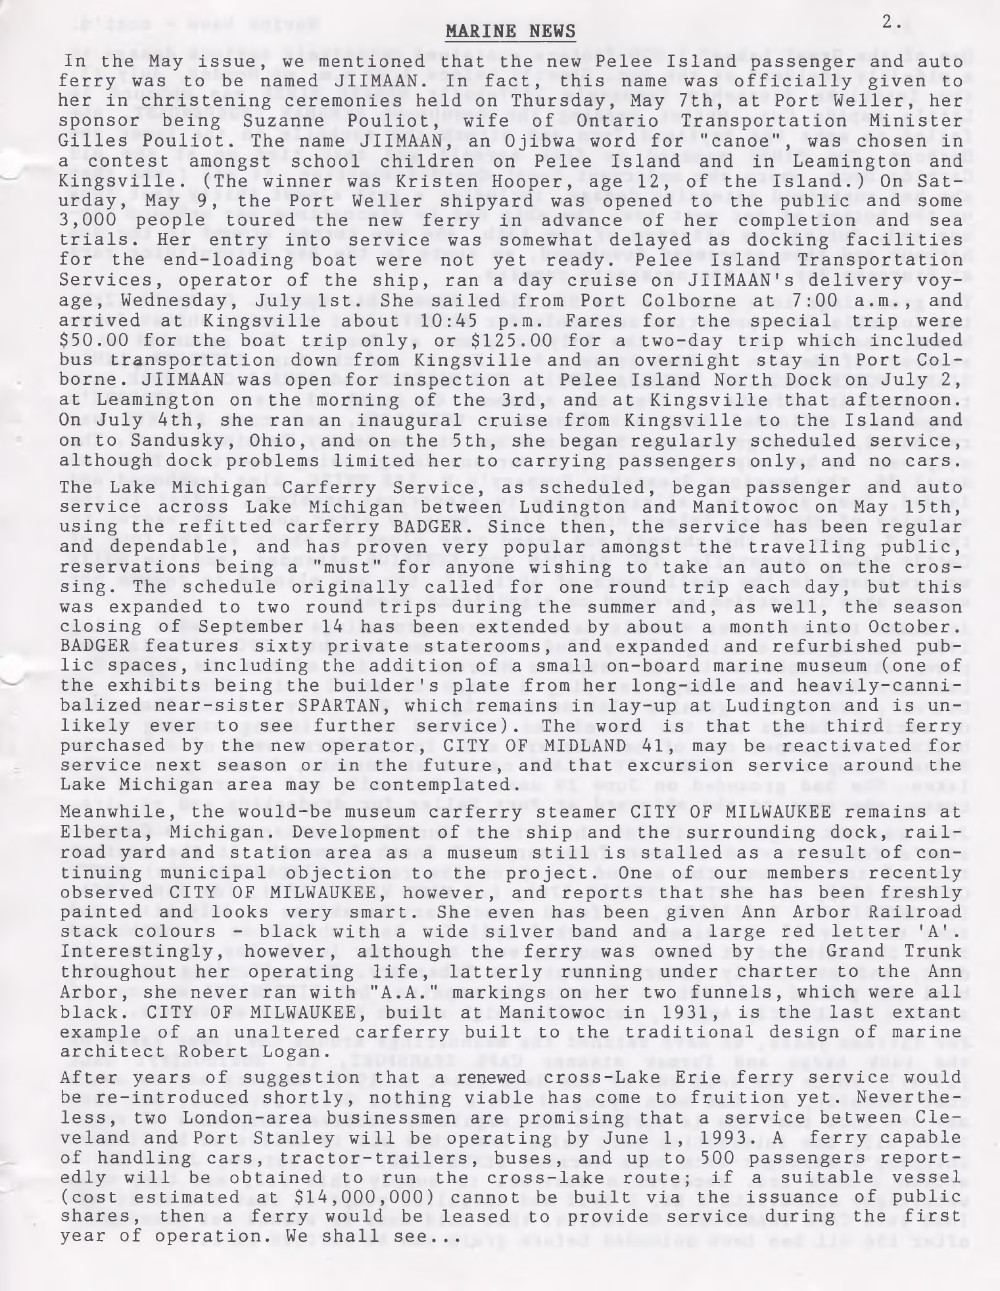 Scanner, v. 24, no. 9 (Mid-Summer 1992)